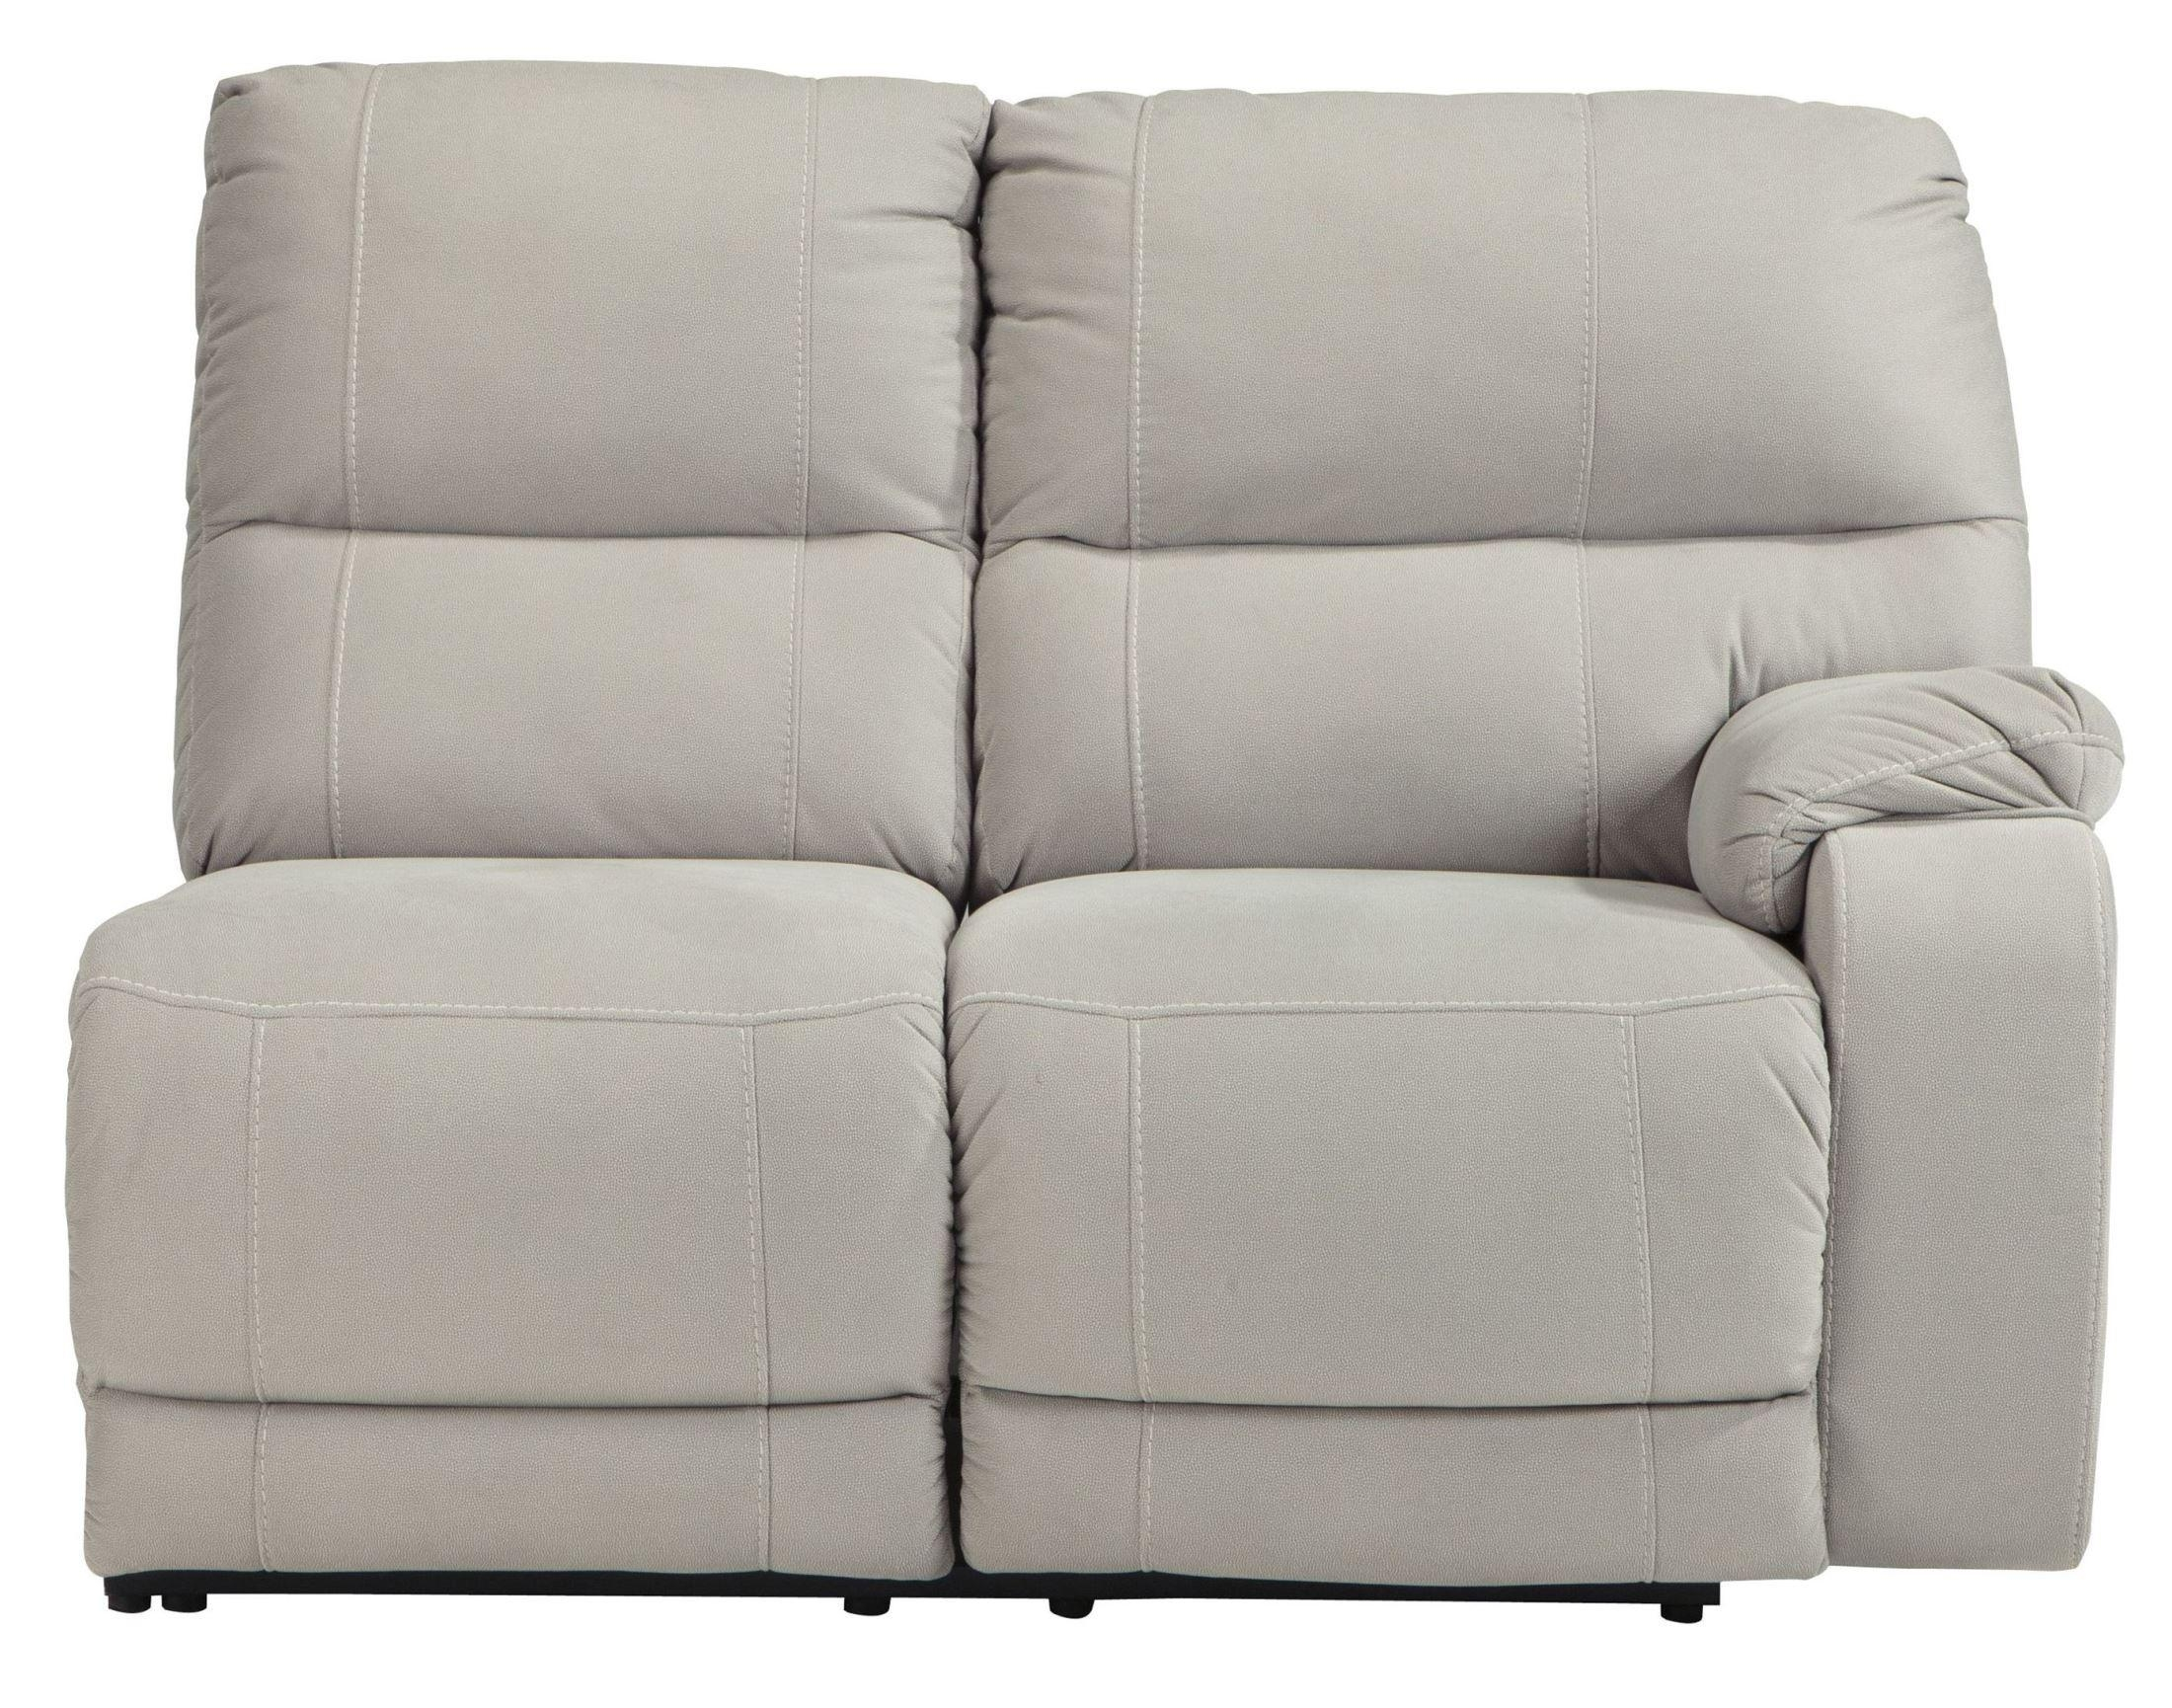 Sofas Center : Carlyle Sofa Beds Shop Reviews Shopcarlisle With Regard To Carlyle Sofa Beds (Image 16 of 20)